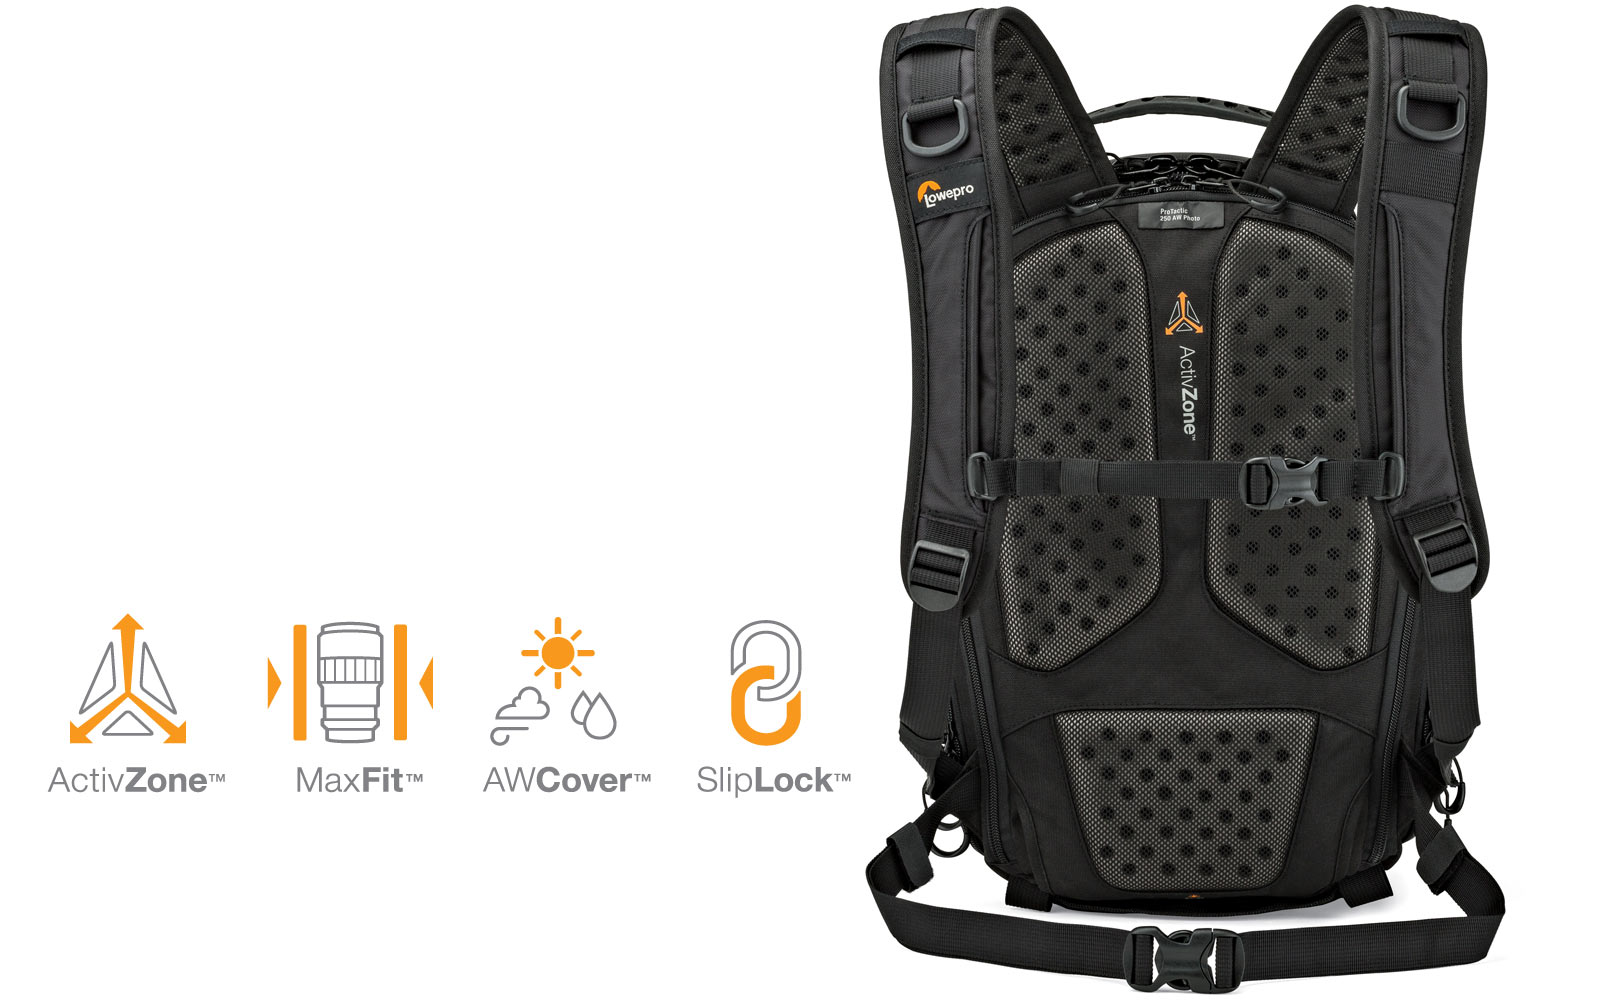 ProTactic Backpack technology